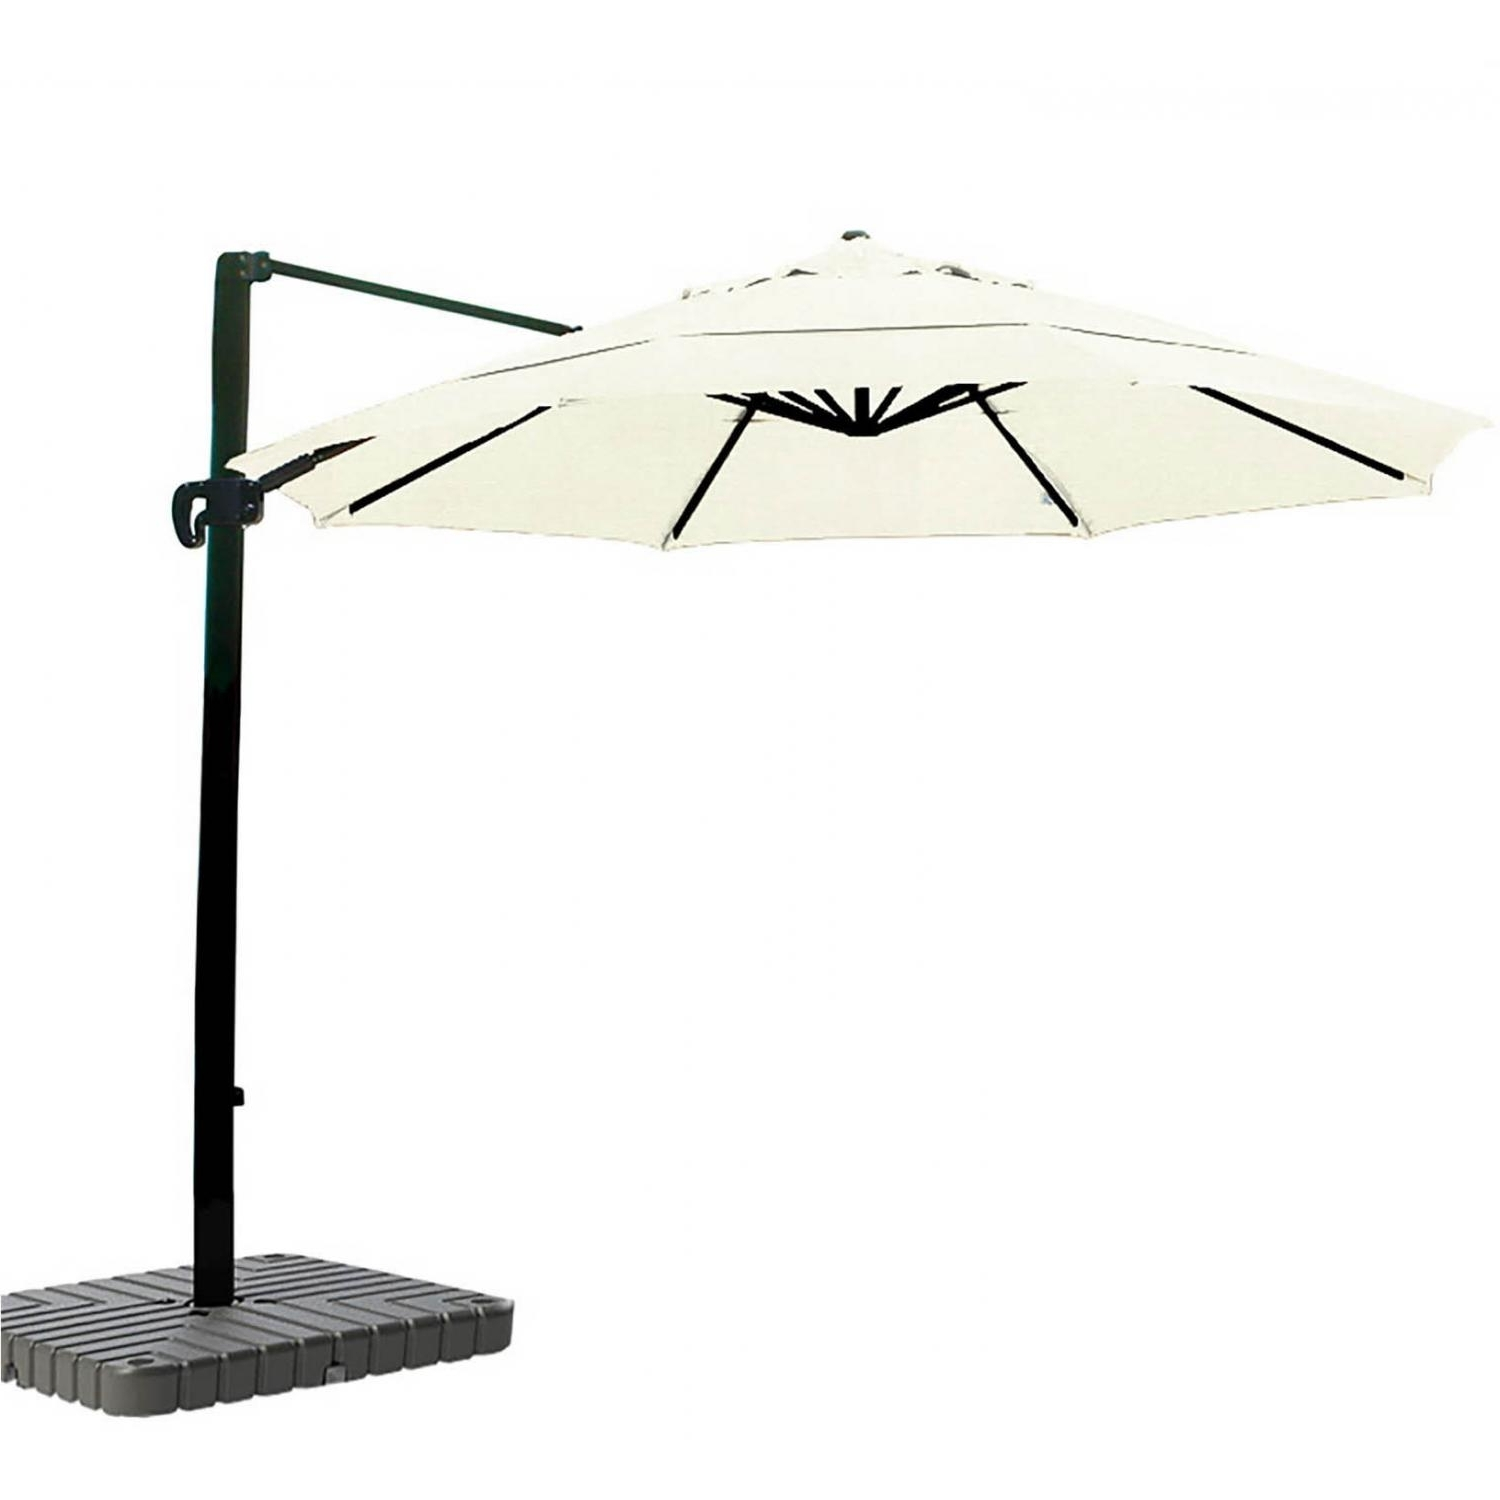 California Umbrella 11 Ft Octagonal Aluminum Multi Position Tilt In Recent 11 Foot Patio Umbrellas (View 5 of 20)